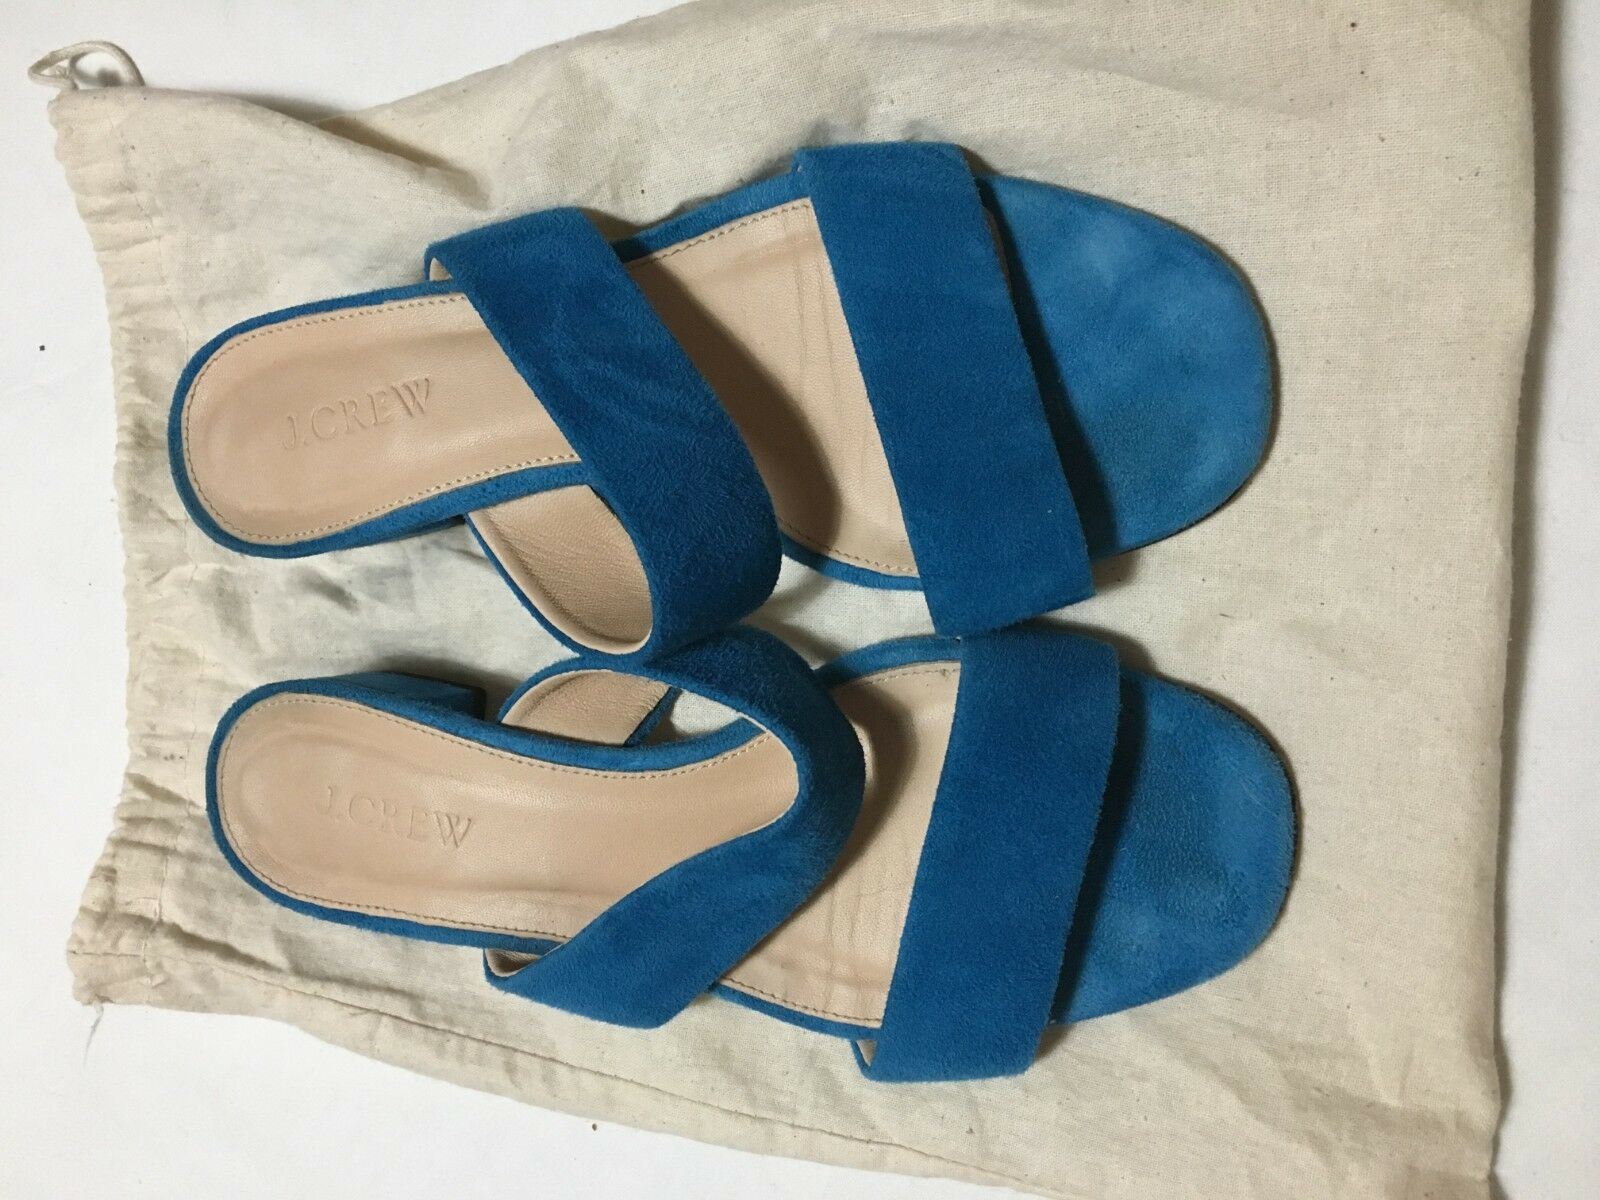 J. Crew Turquoise Size 7 Flats Sandals Slip on Comfy Donna Pelle Lining